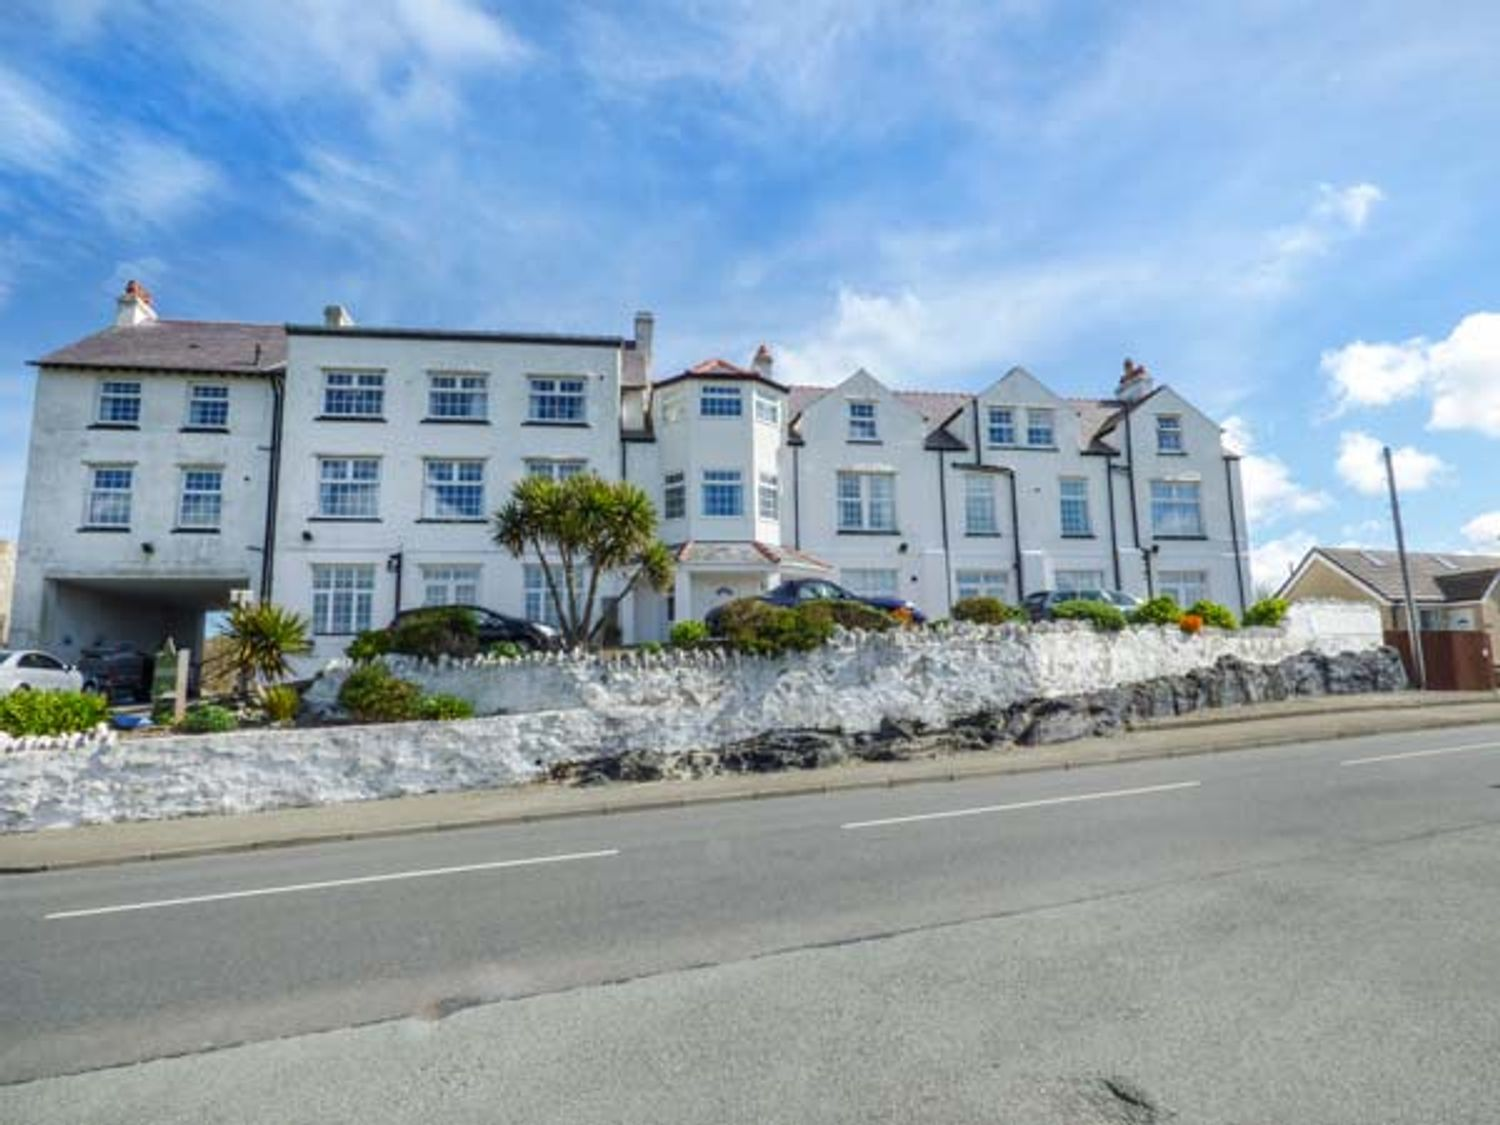 Flat 12 - Anglesey - 958253 - photo 1